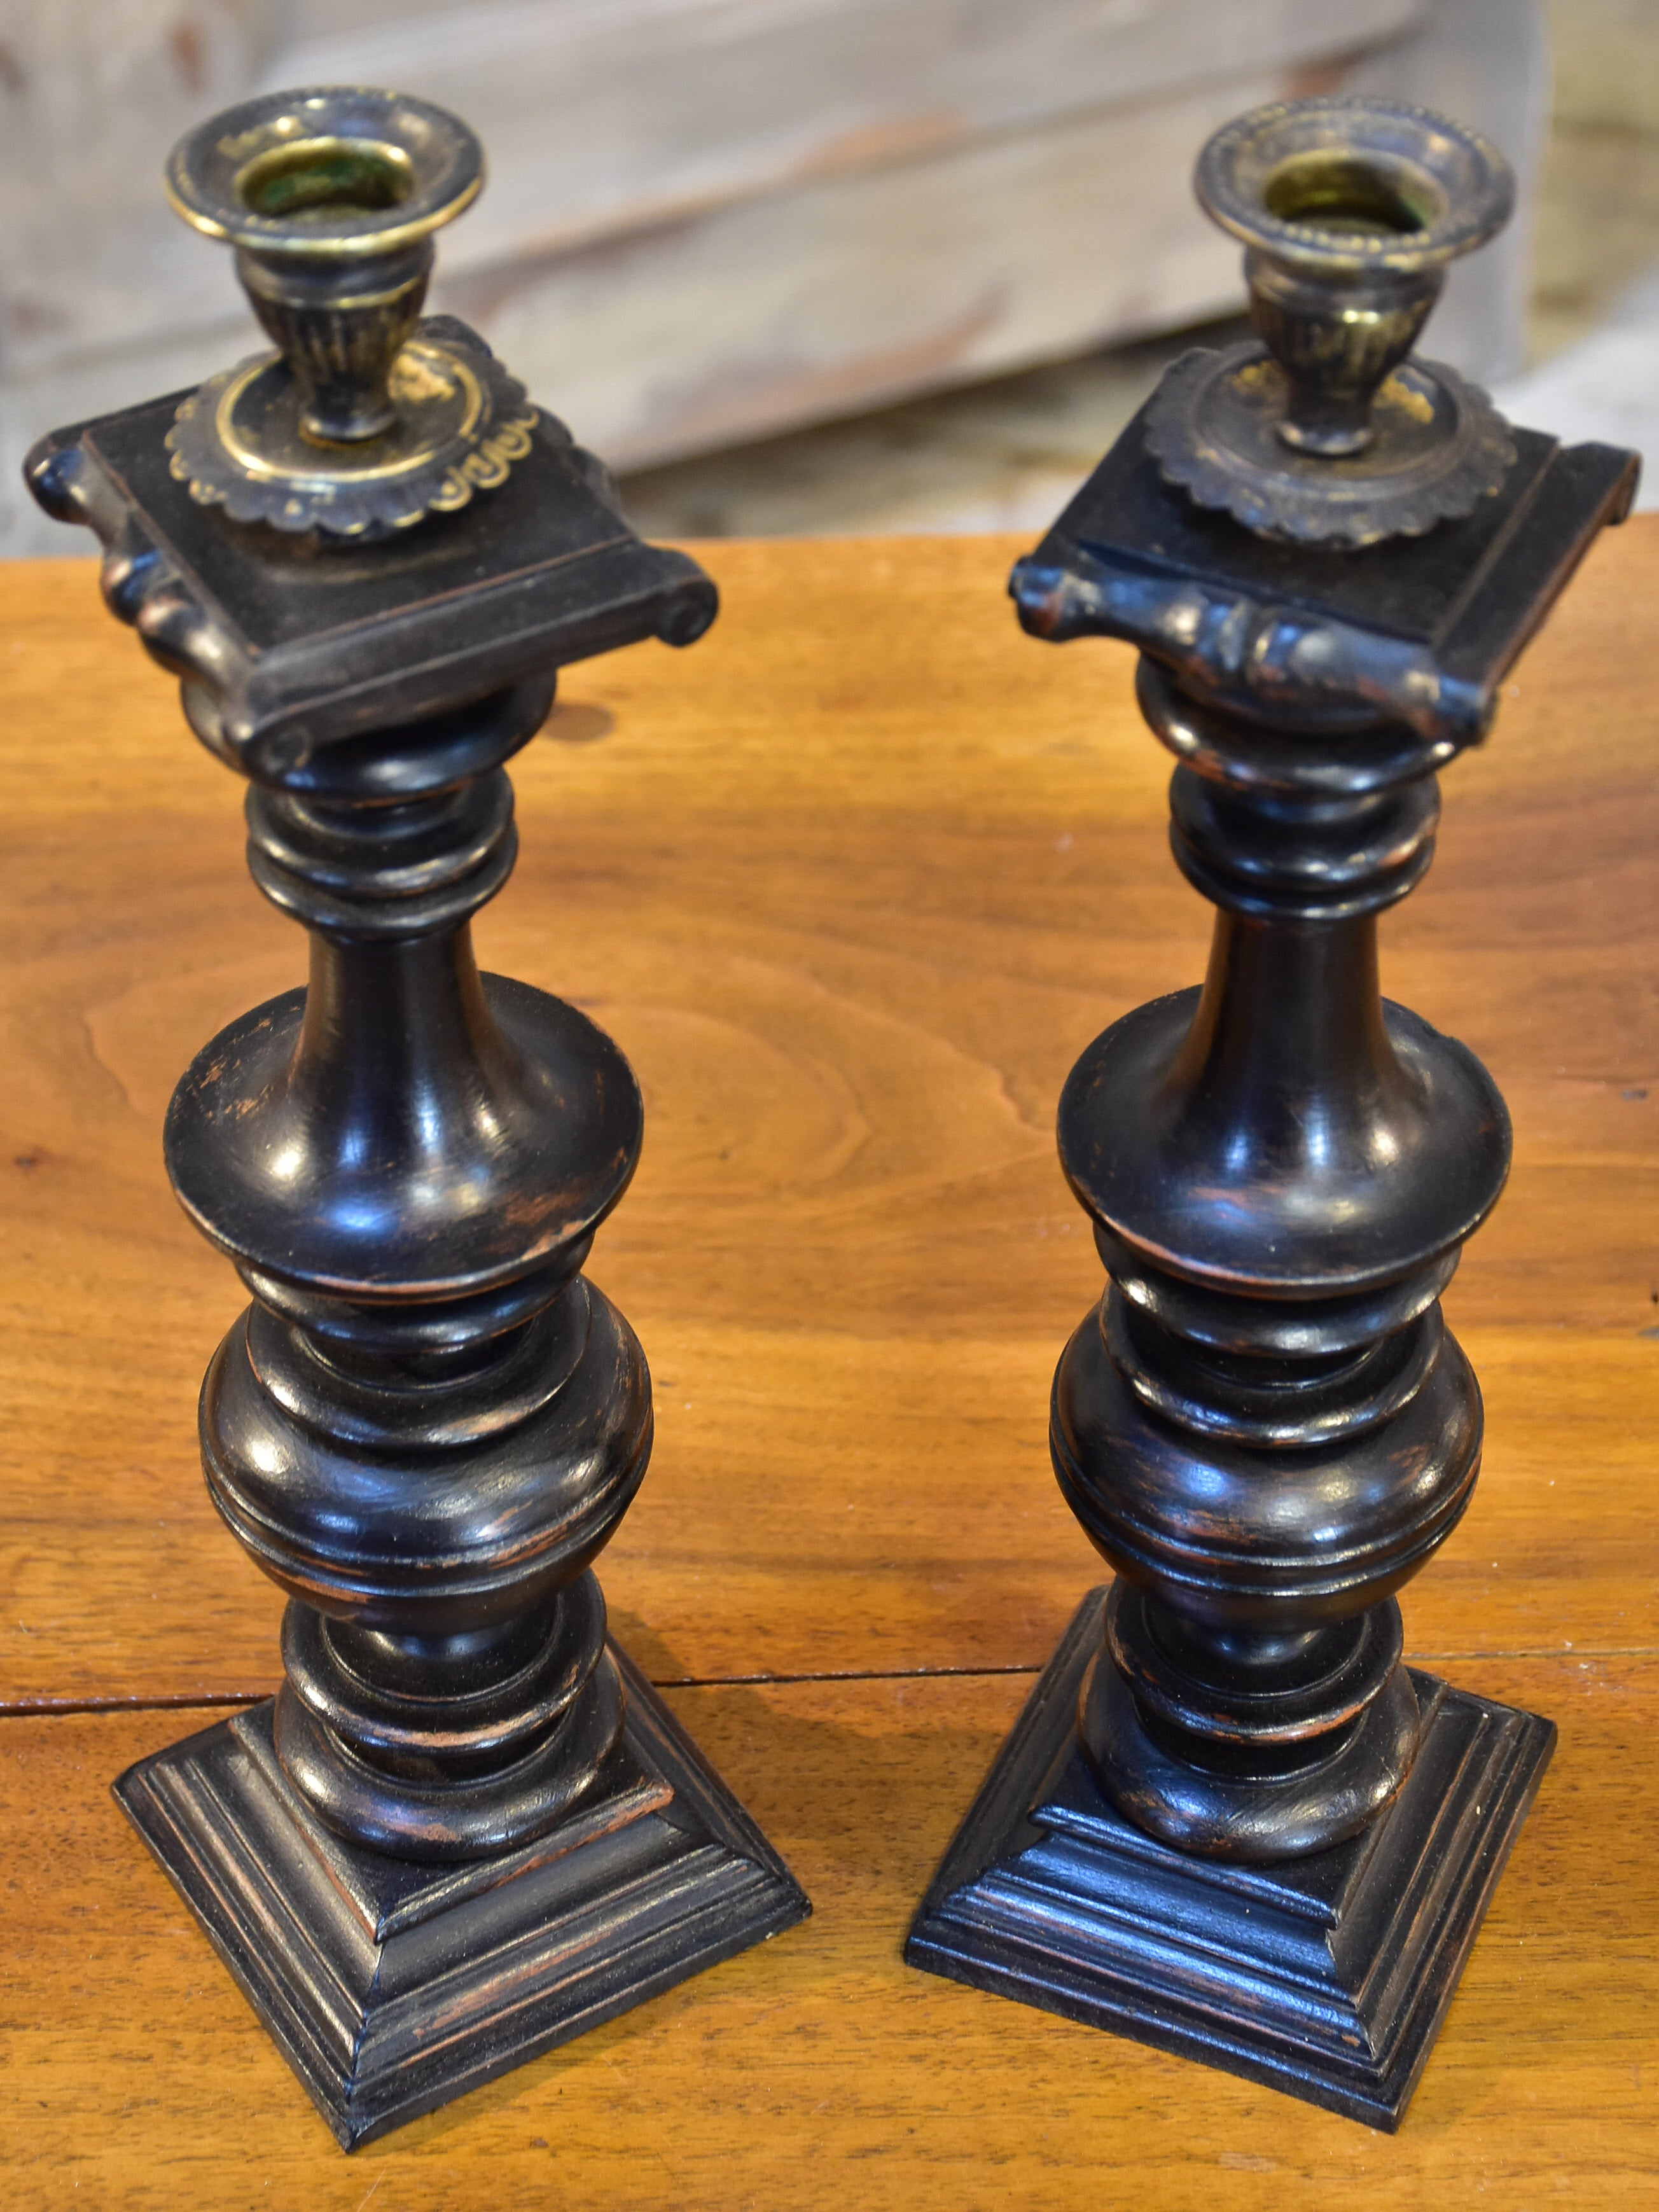 Pair of French candlesticks with black finish